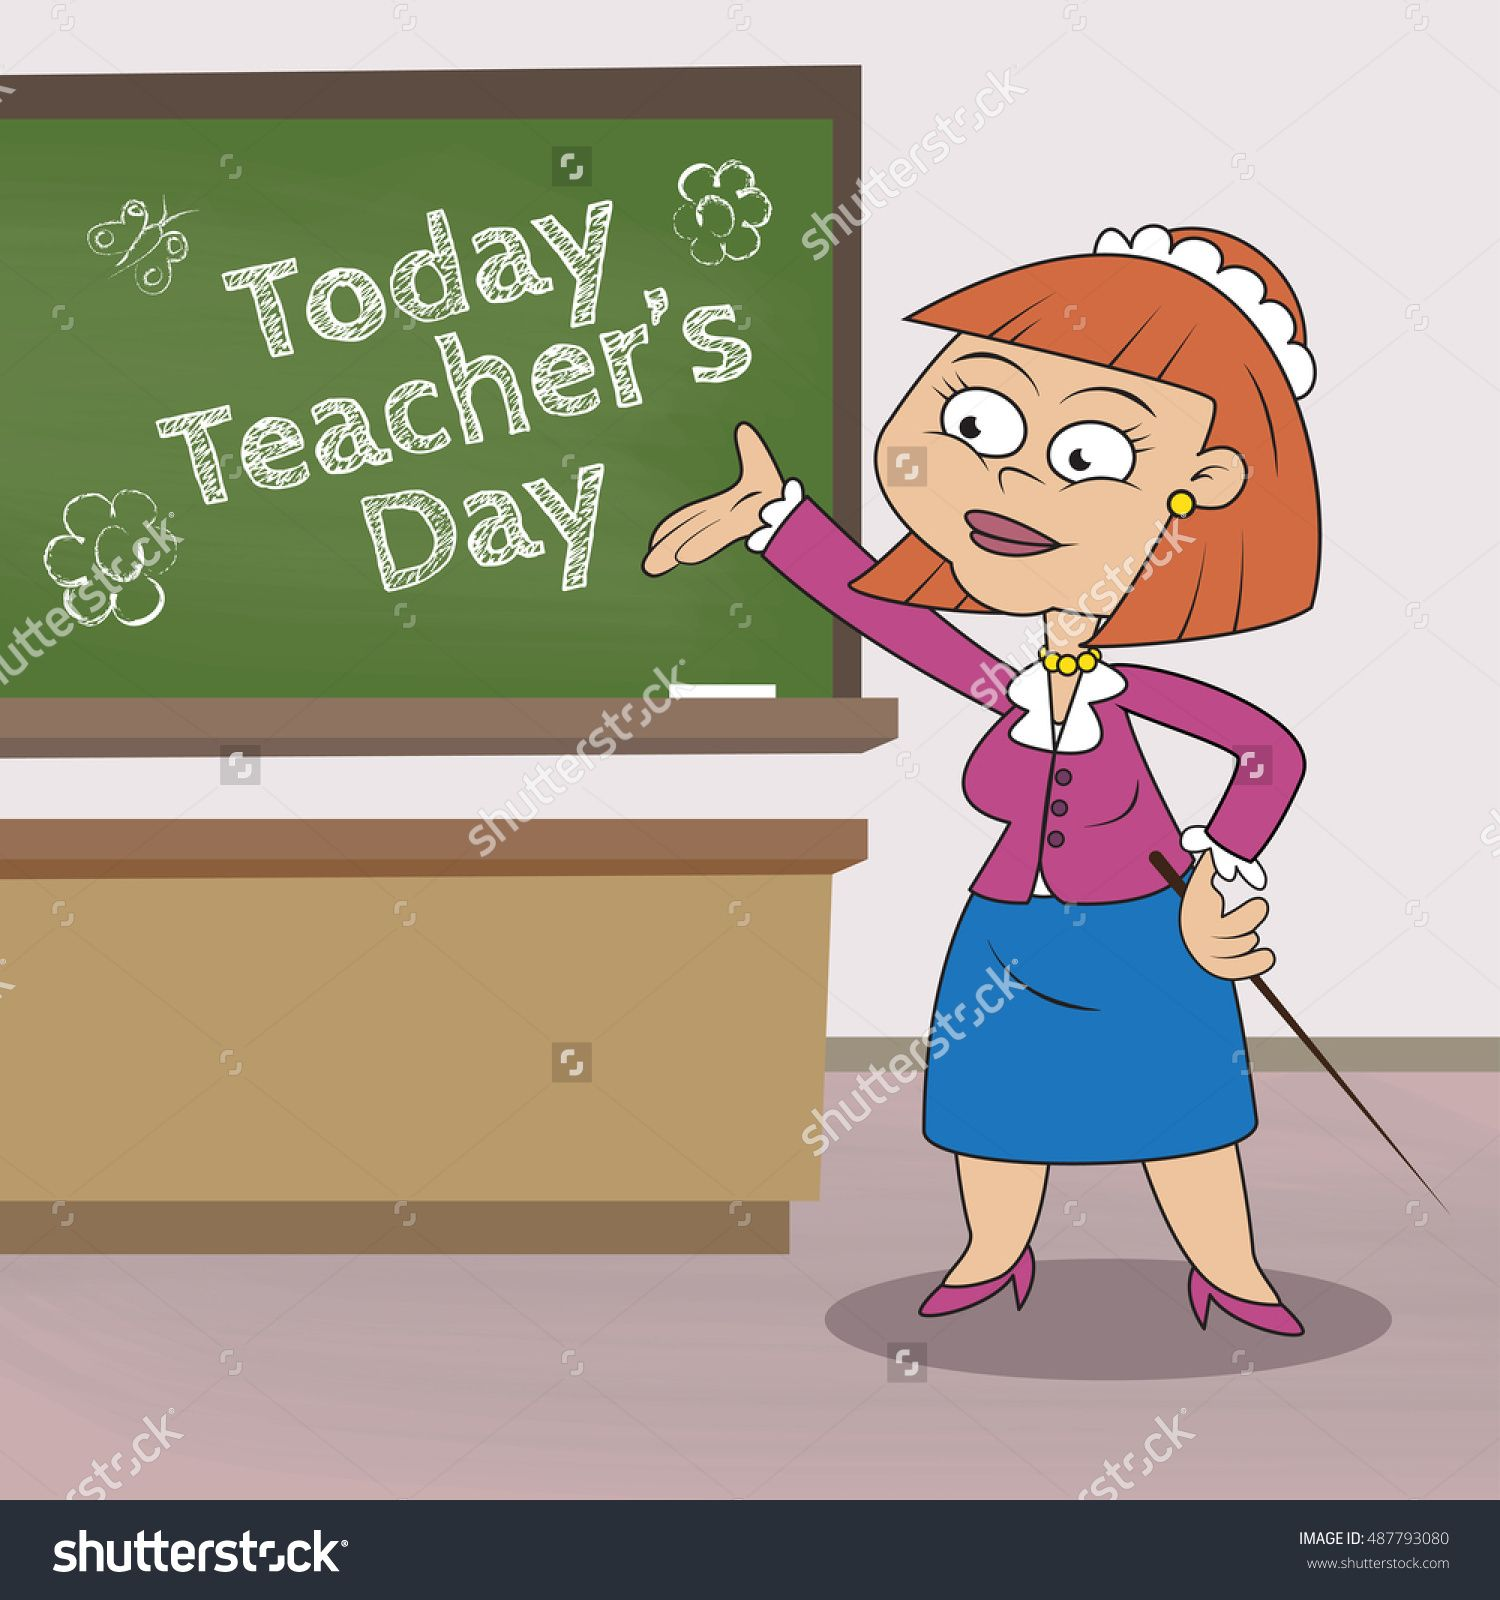 Female teacher with pointer stands near the chalkboard